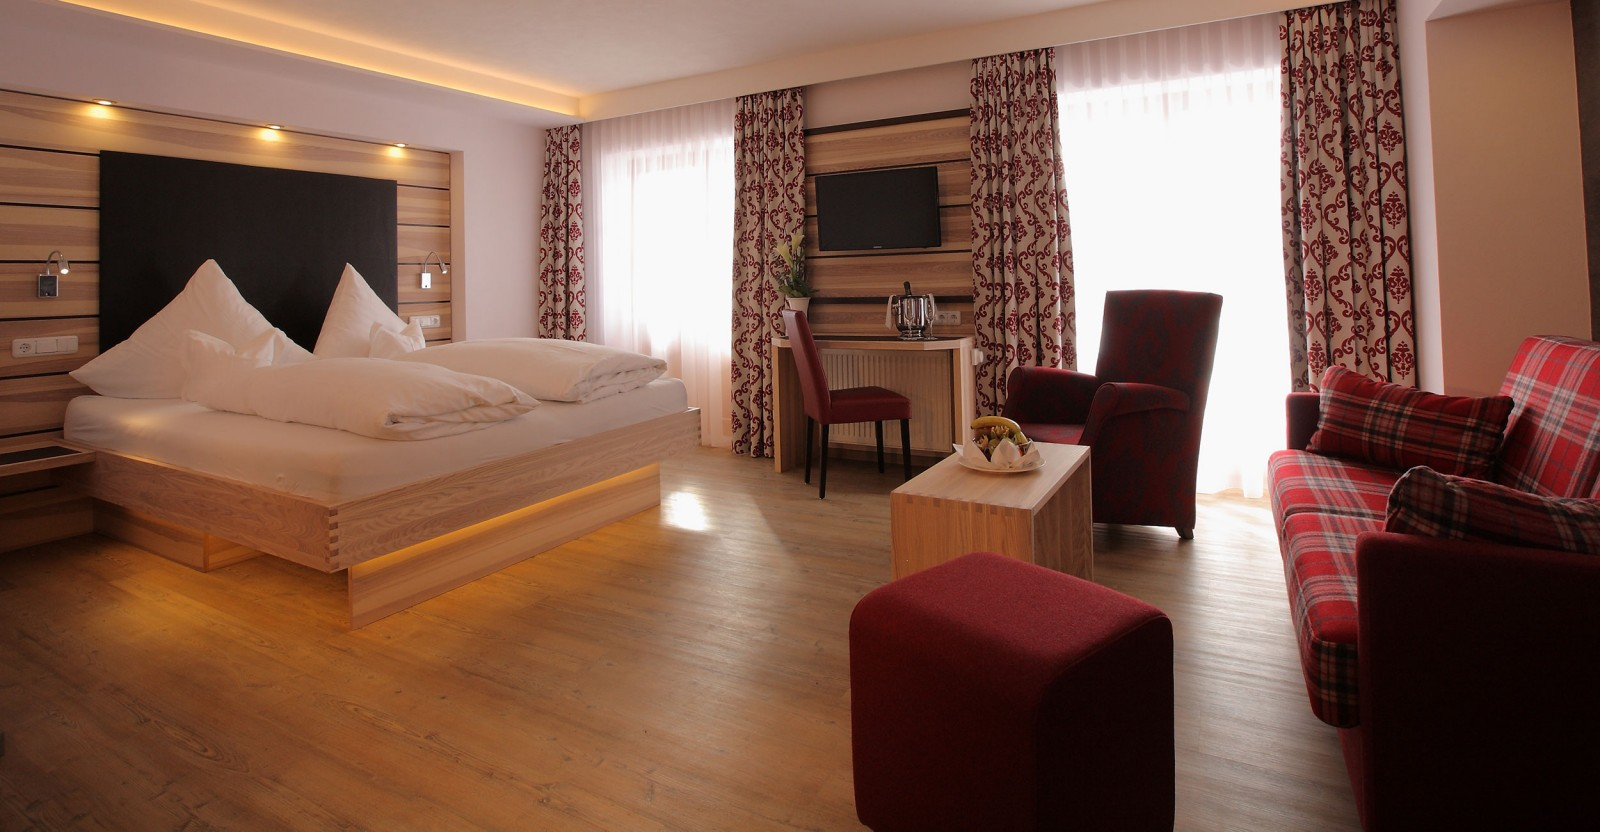 Your hotel in oberstdorf